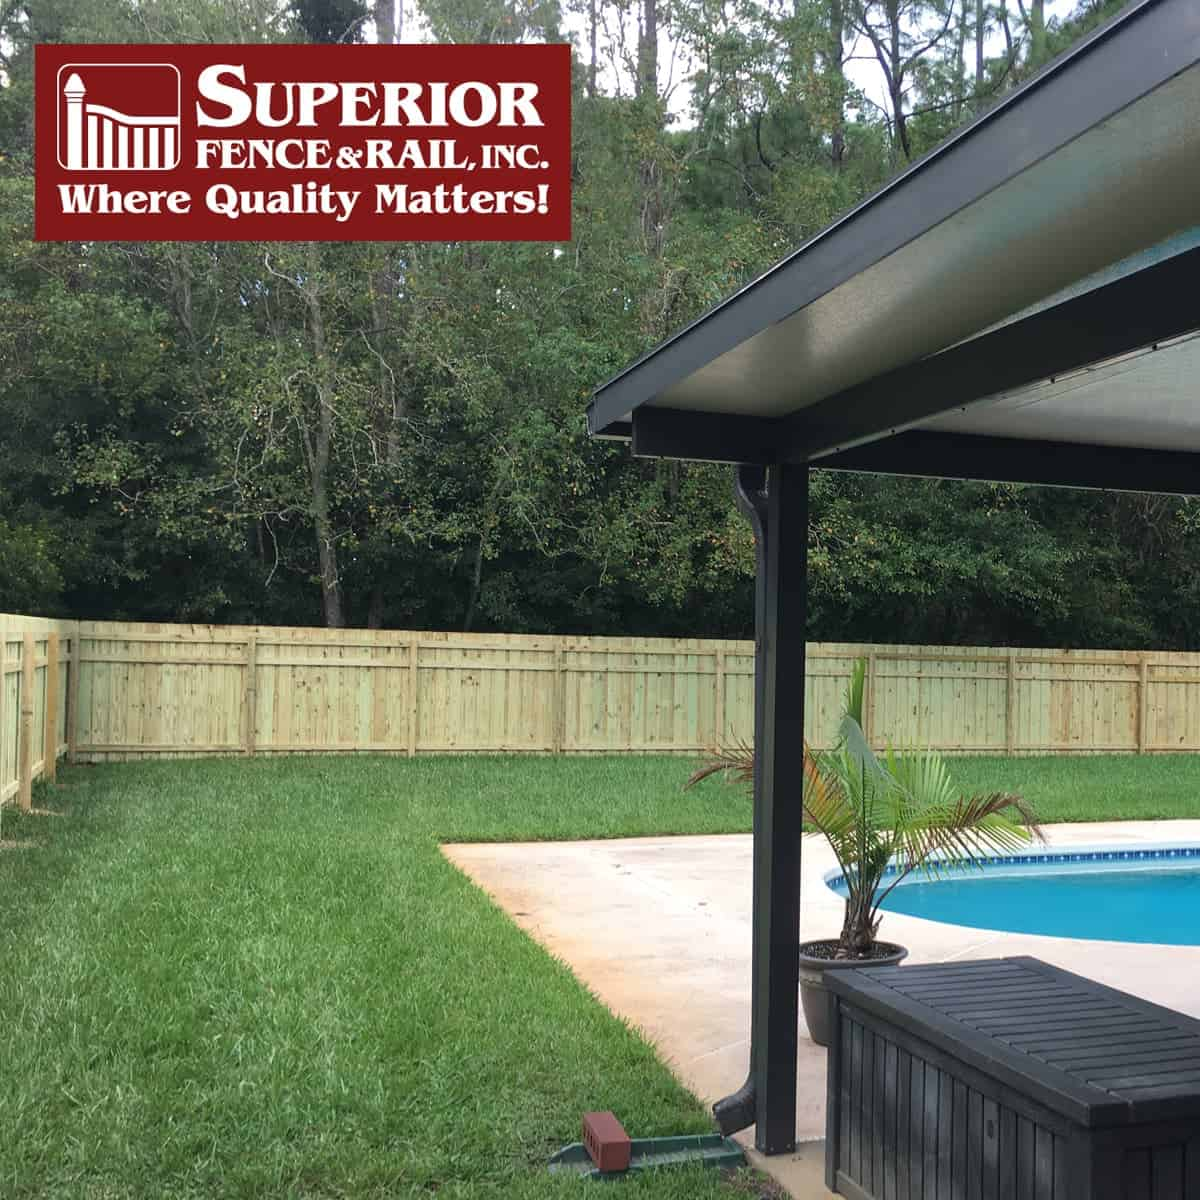 Blythewoods Fence Company Contactor